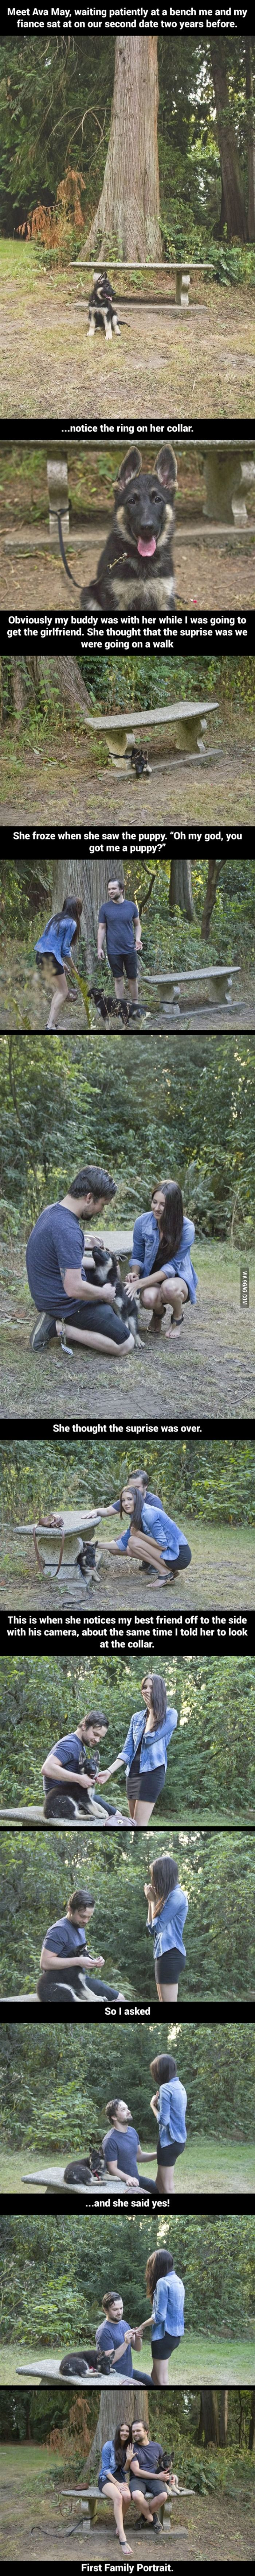 THIS! proposal and a puppy! sooooo cute!